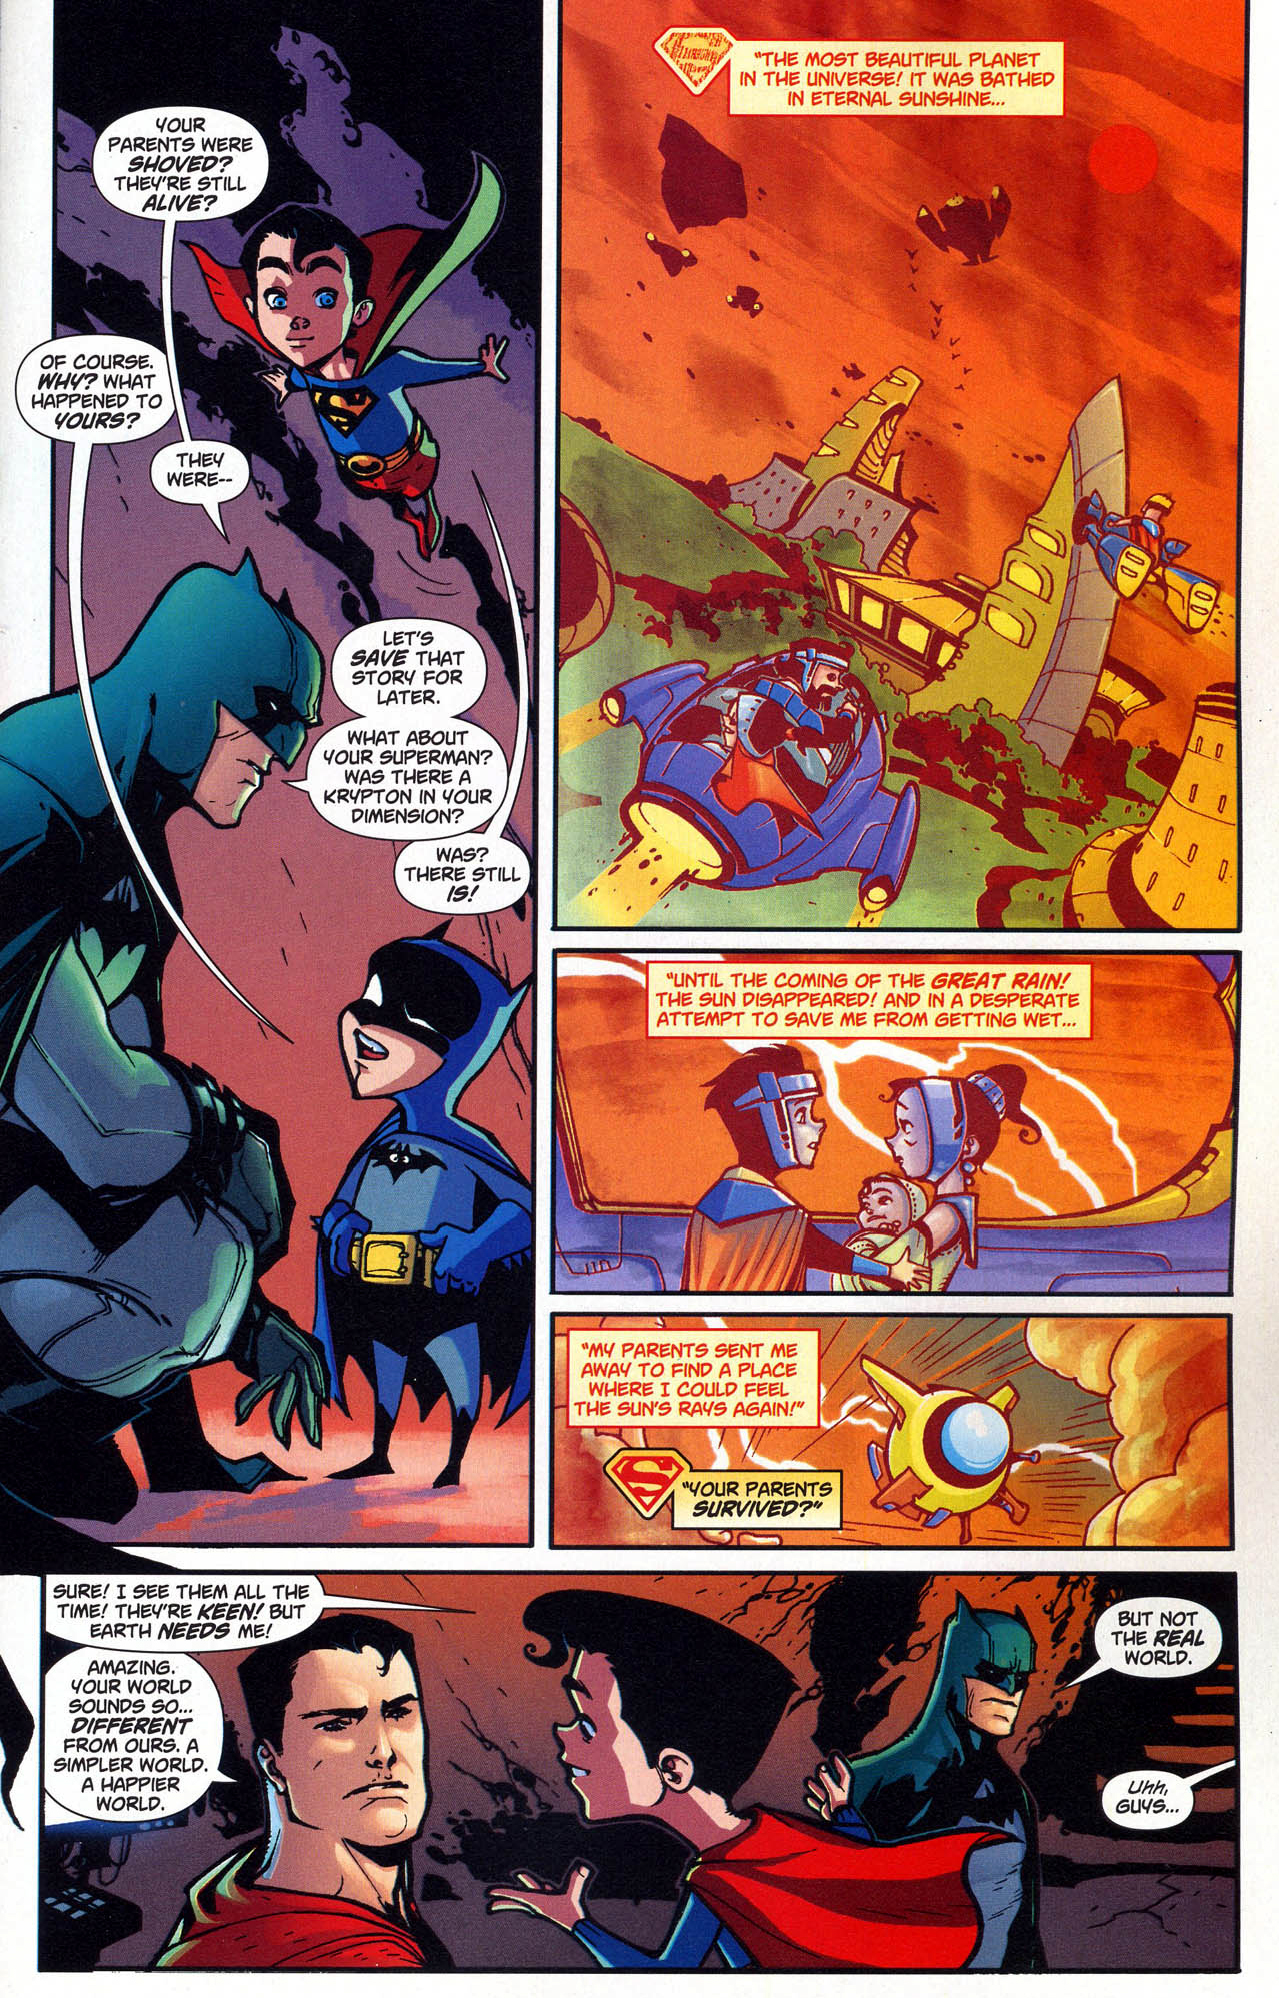 Mini batman and supermans origin story comicnewbies mini batman and supermans origin story mini batman and supermans origin story voltagebd Image collections